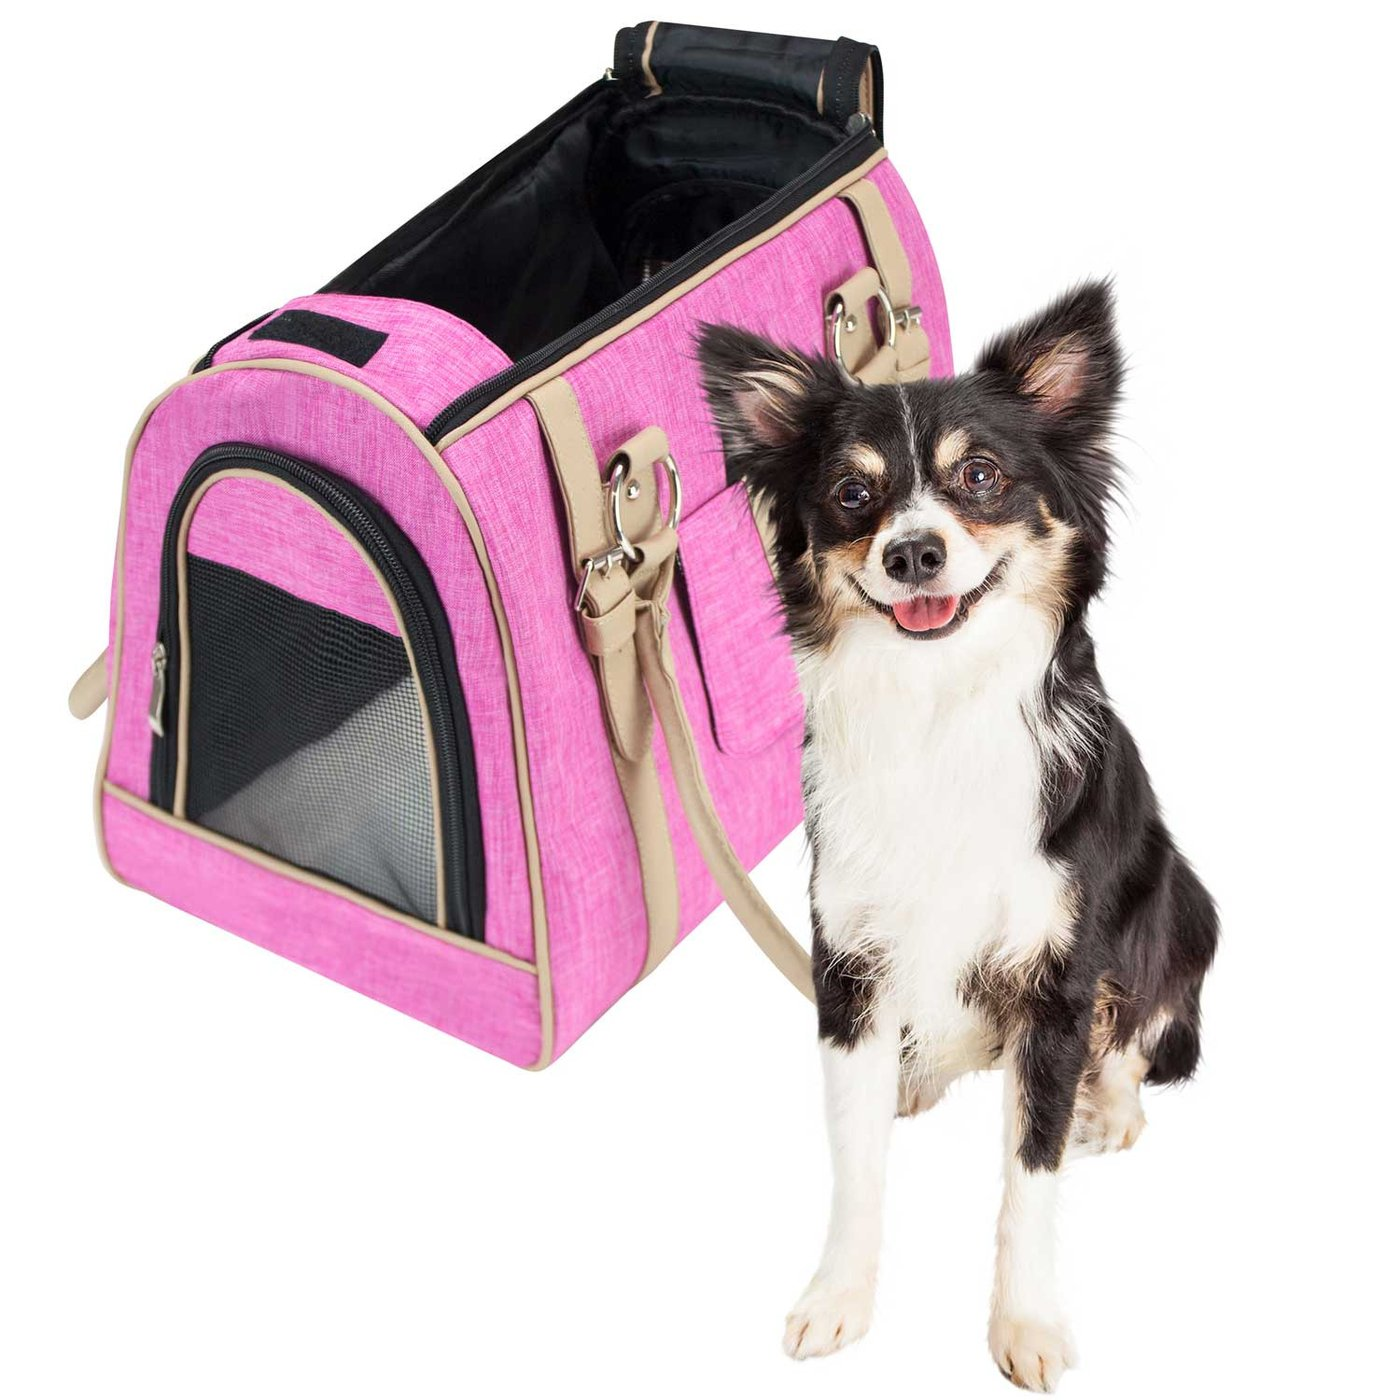 Freahap Pet Carrier Bag Oxford Pet Carrying Bag Zippered Tote Bag for Cats Small Dogs Pink S